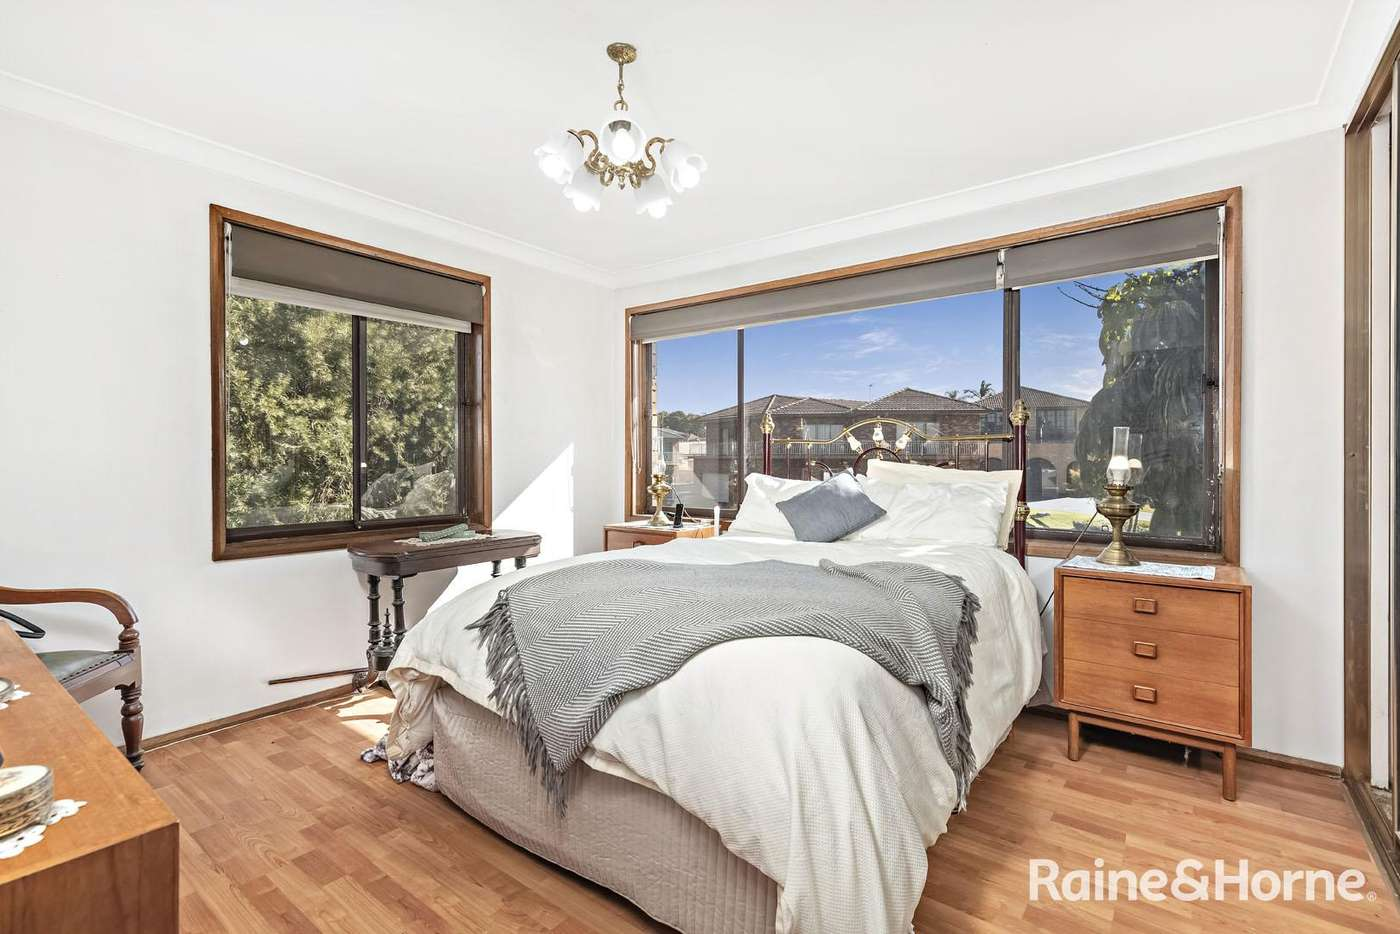 Fifth view of Homely house listing, 28 Marceau Drive, Concord NSW 2137